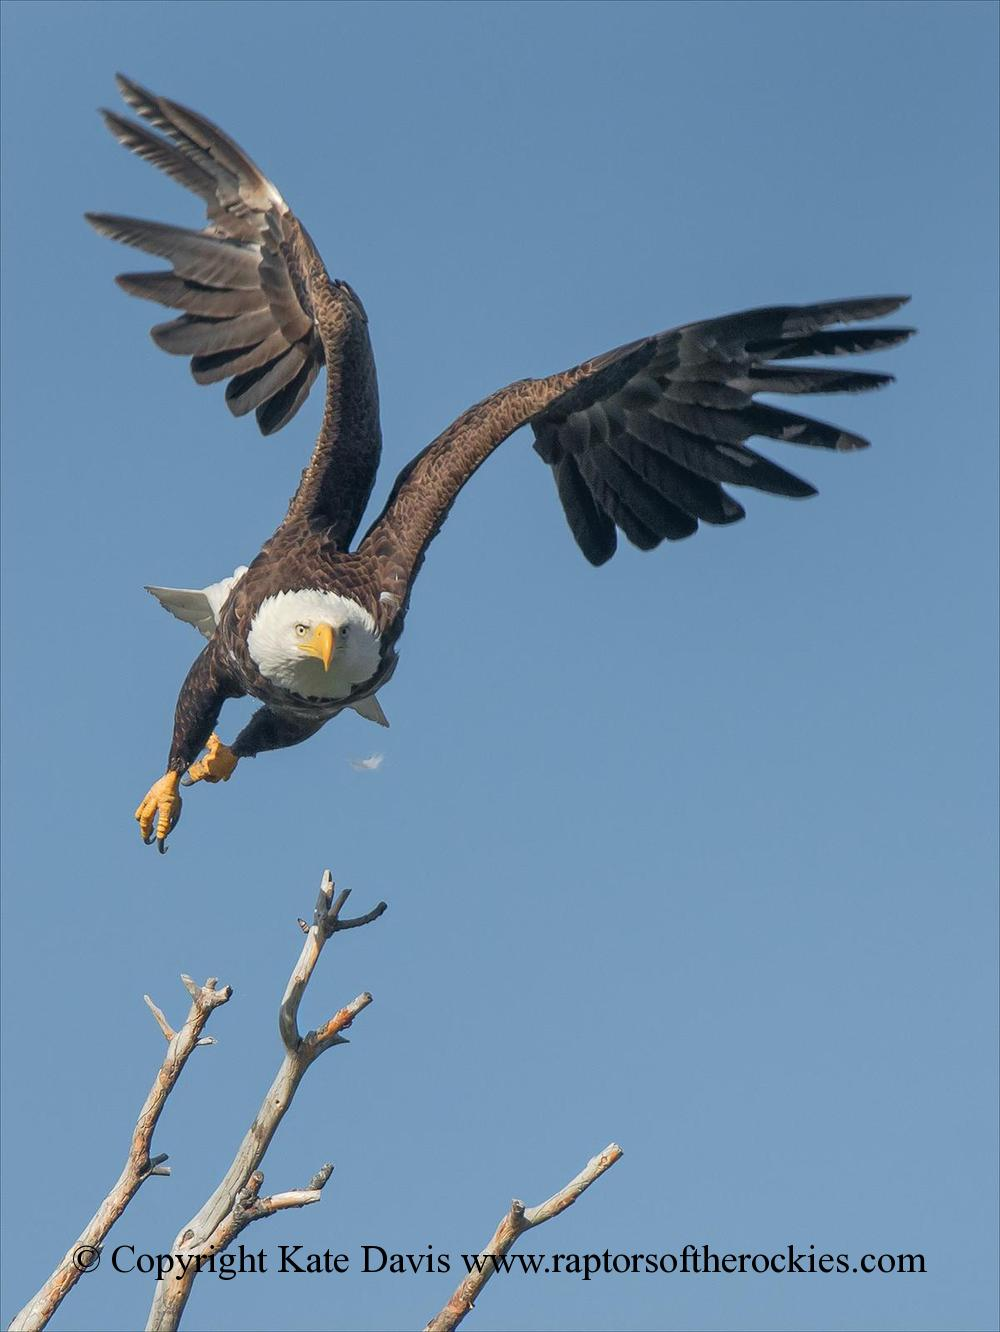 American Bald Eagle - Female Flies - Golden Eagle - Female Bald Eagle takes off to chase something